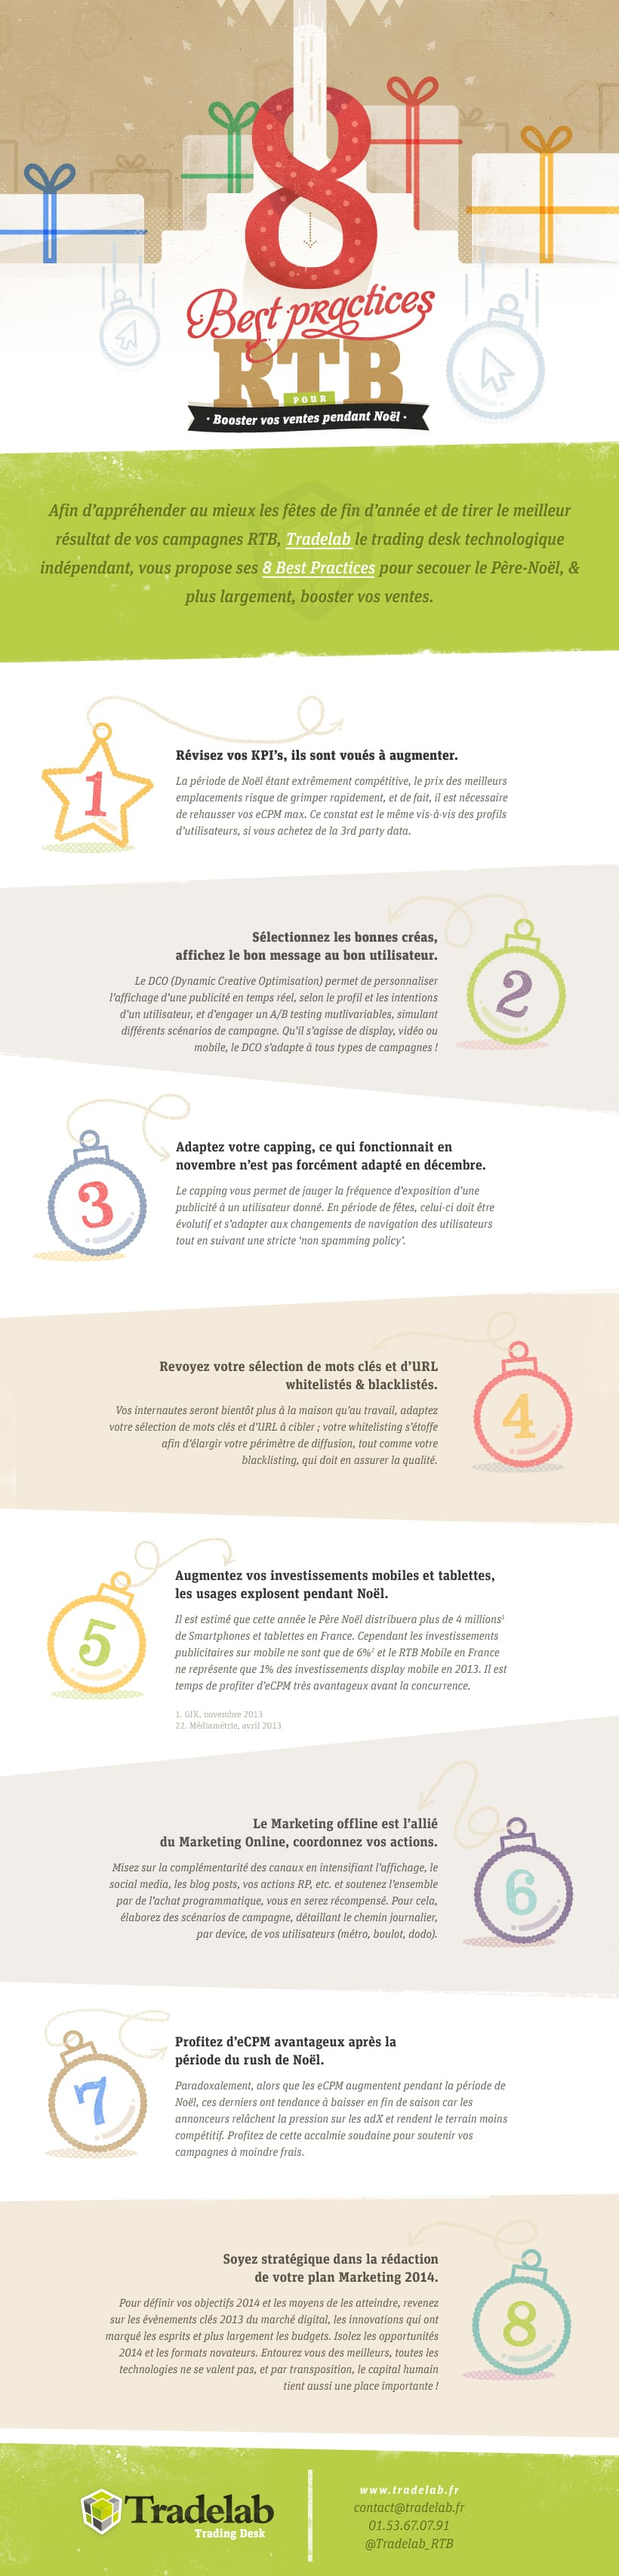 infographie_booster_ventes